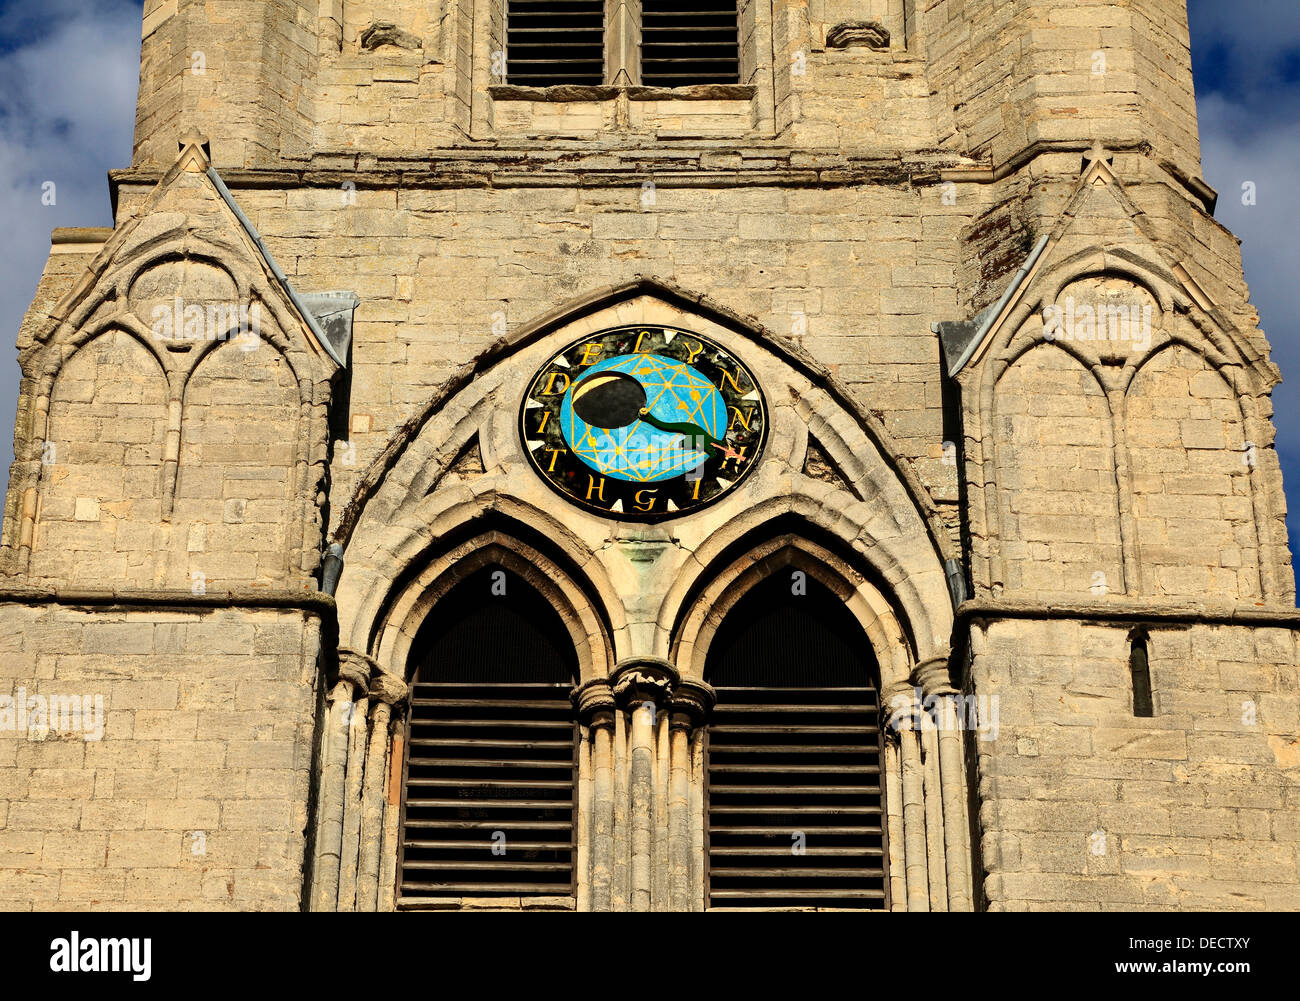 High Tide Amd Uhren Moon Phase Uhr, Kings Lynn St. Margaret's Kirchturm, Englland Norfolk UK Stockbild